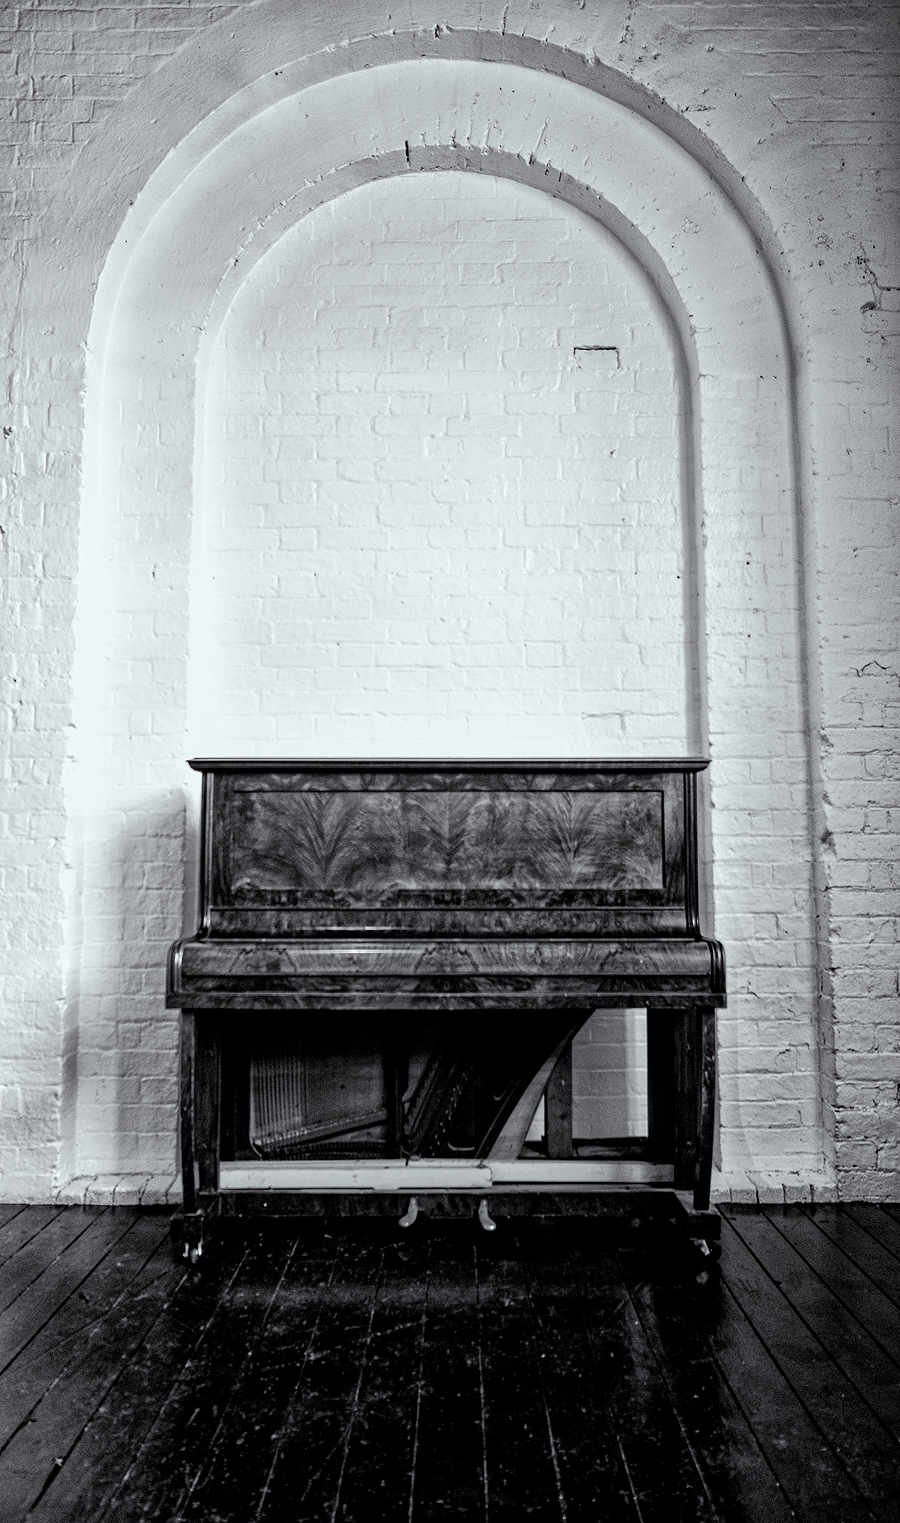 New Piano in the new shooting area / Photography by JTD-Photography, Taken at Natural Light Spaces / Uploaded 25th July 2020 @ 10:38 AM